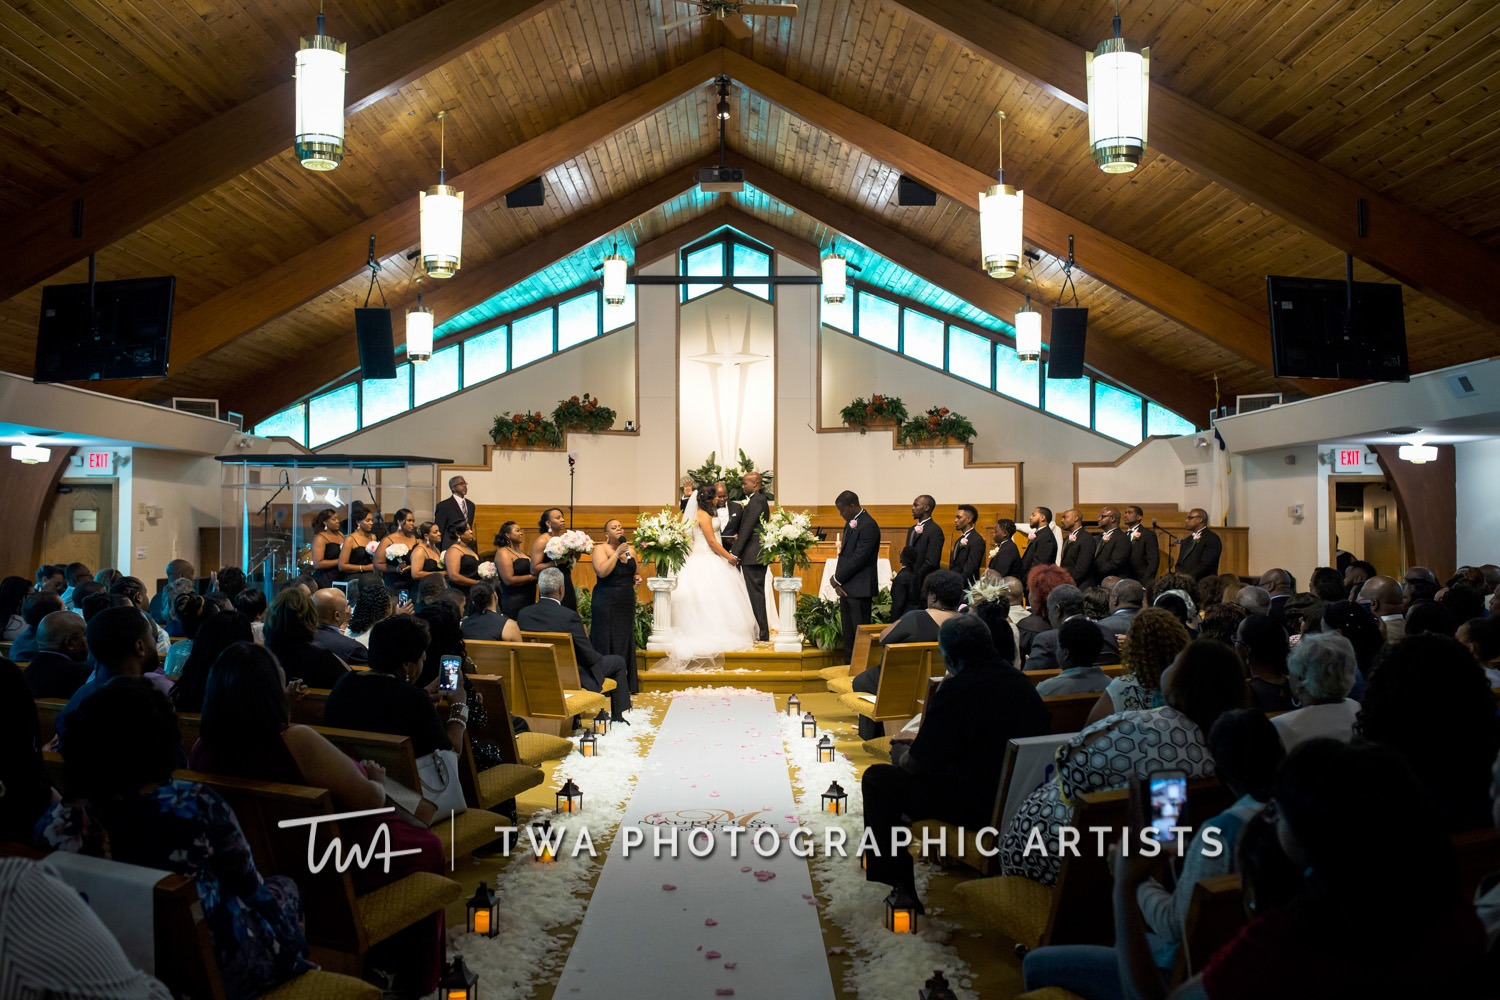 Chicago-Wedding-Photographer-TWA-Photographic-Artists-Haley-Mansion_Graves_Moffett_JM-013_0238